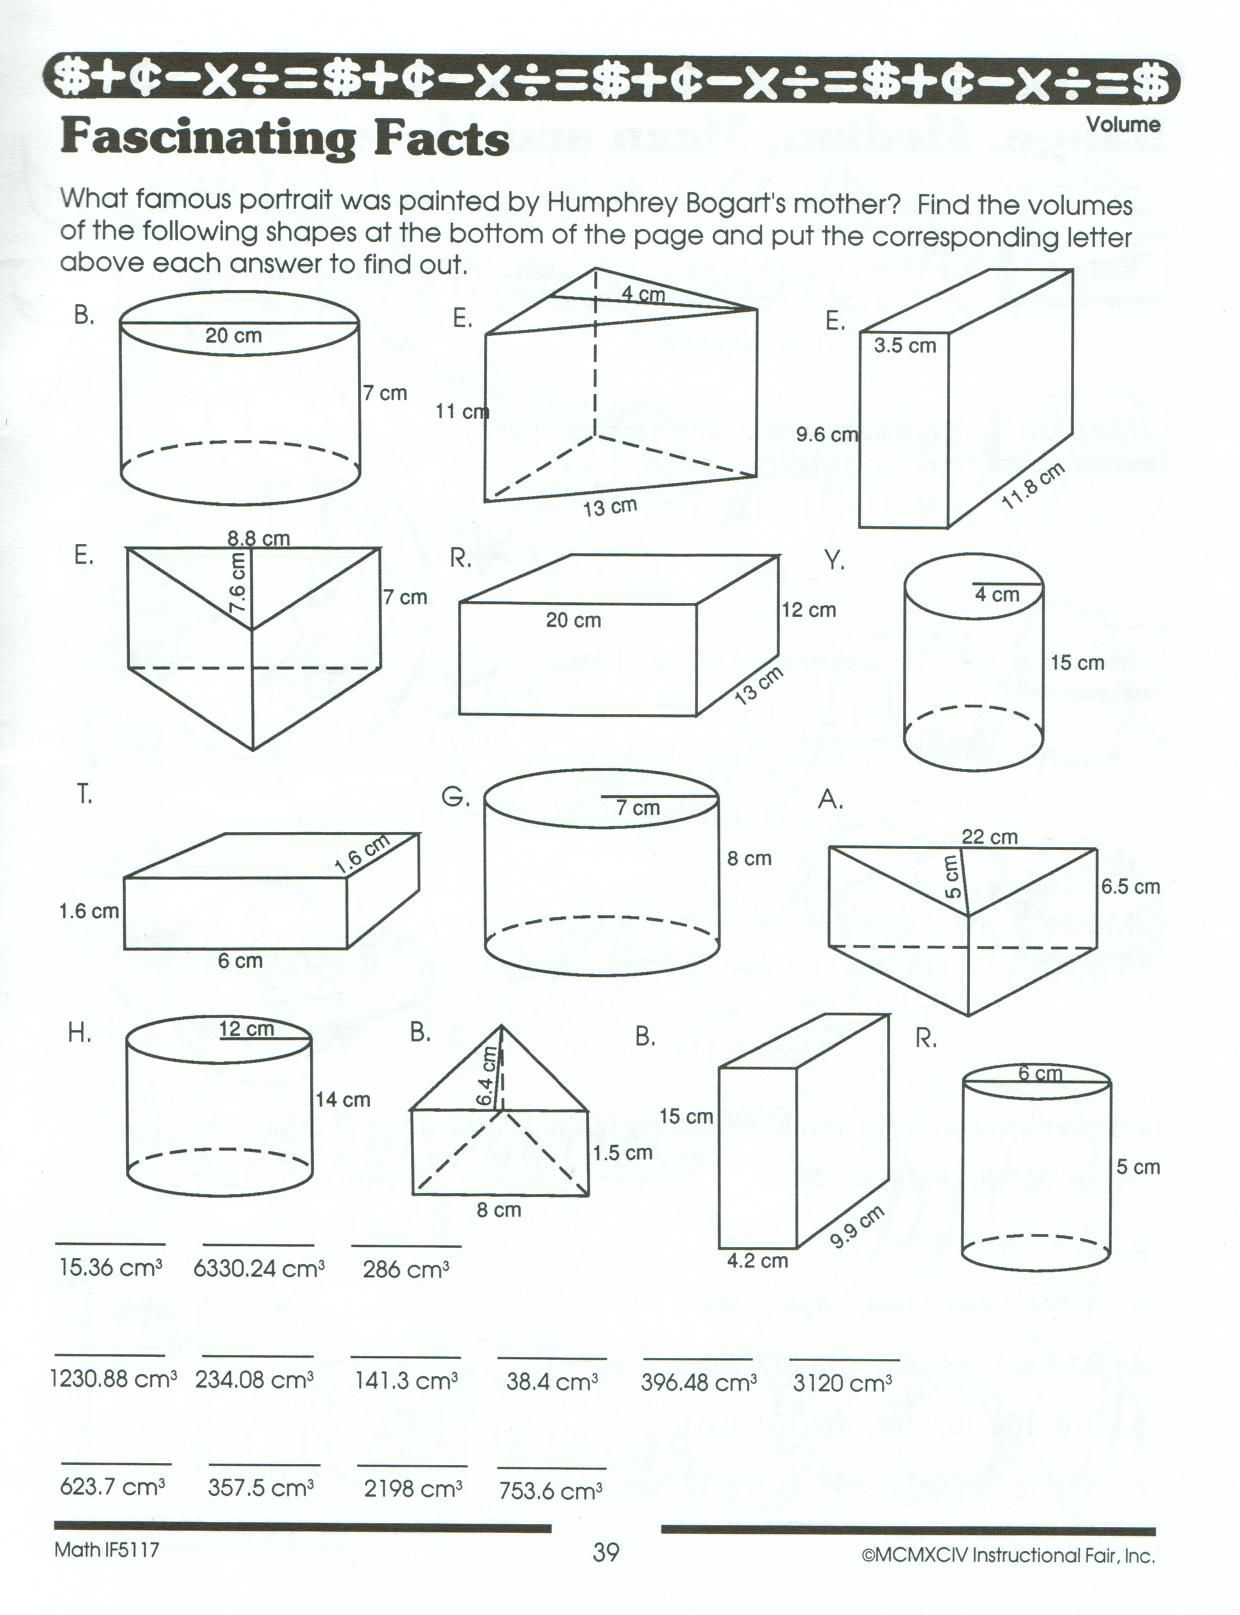 Volume Of Pyramids Worksheet Kuta